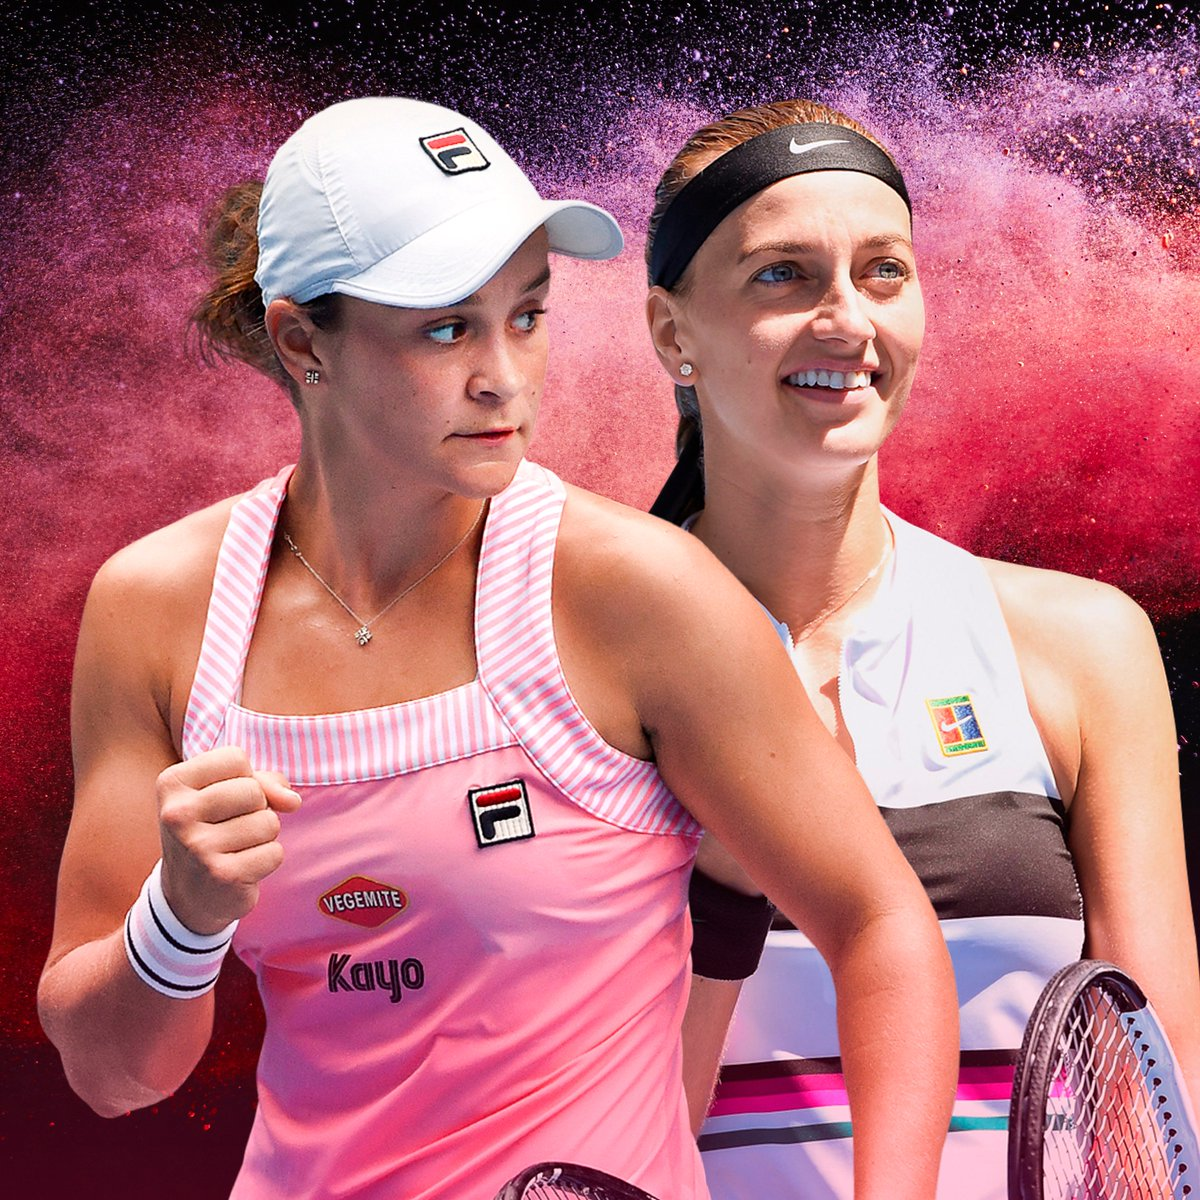 The countdown is almost over.  #Barty 🇦🇺 vs #Kvitova 🇨🇿  Who will prevail? #AusOpen